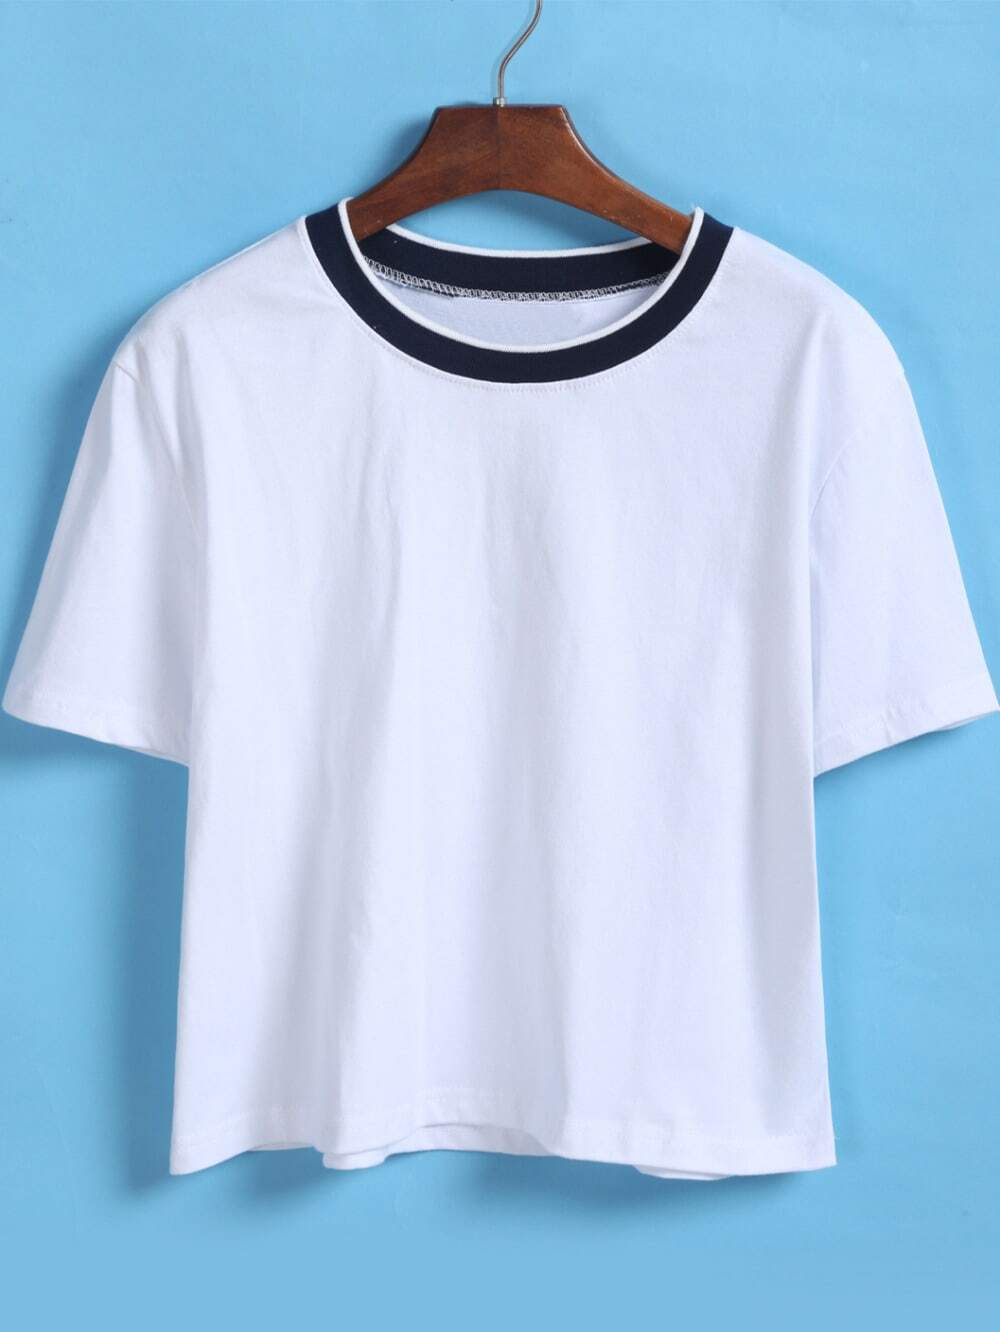 Contrast Collar Loose Crop White T Shirt Shein Sheinside